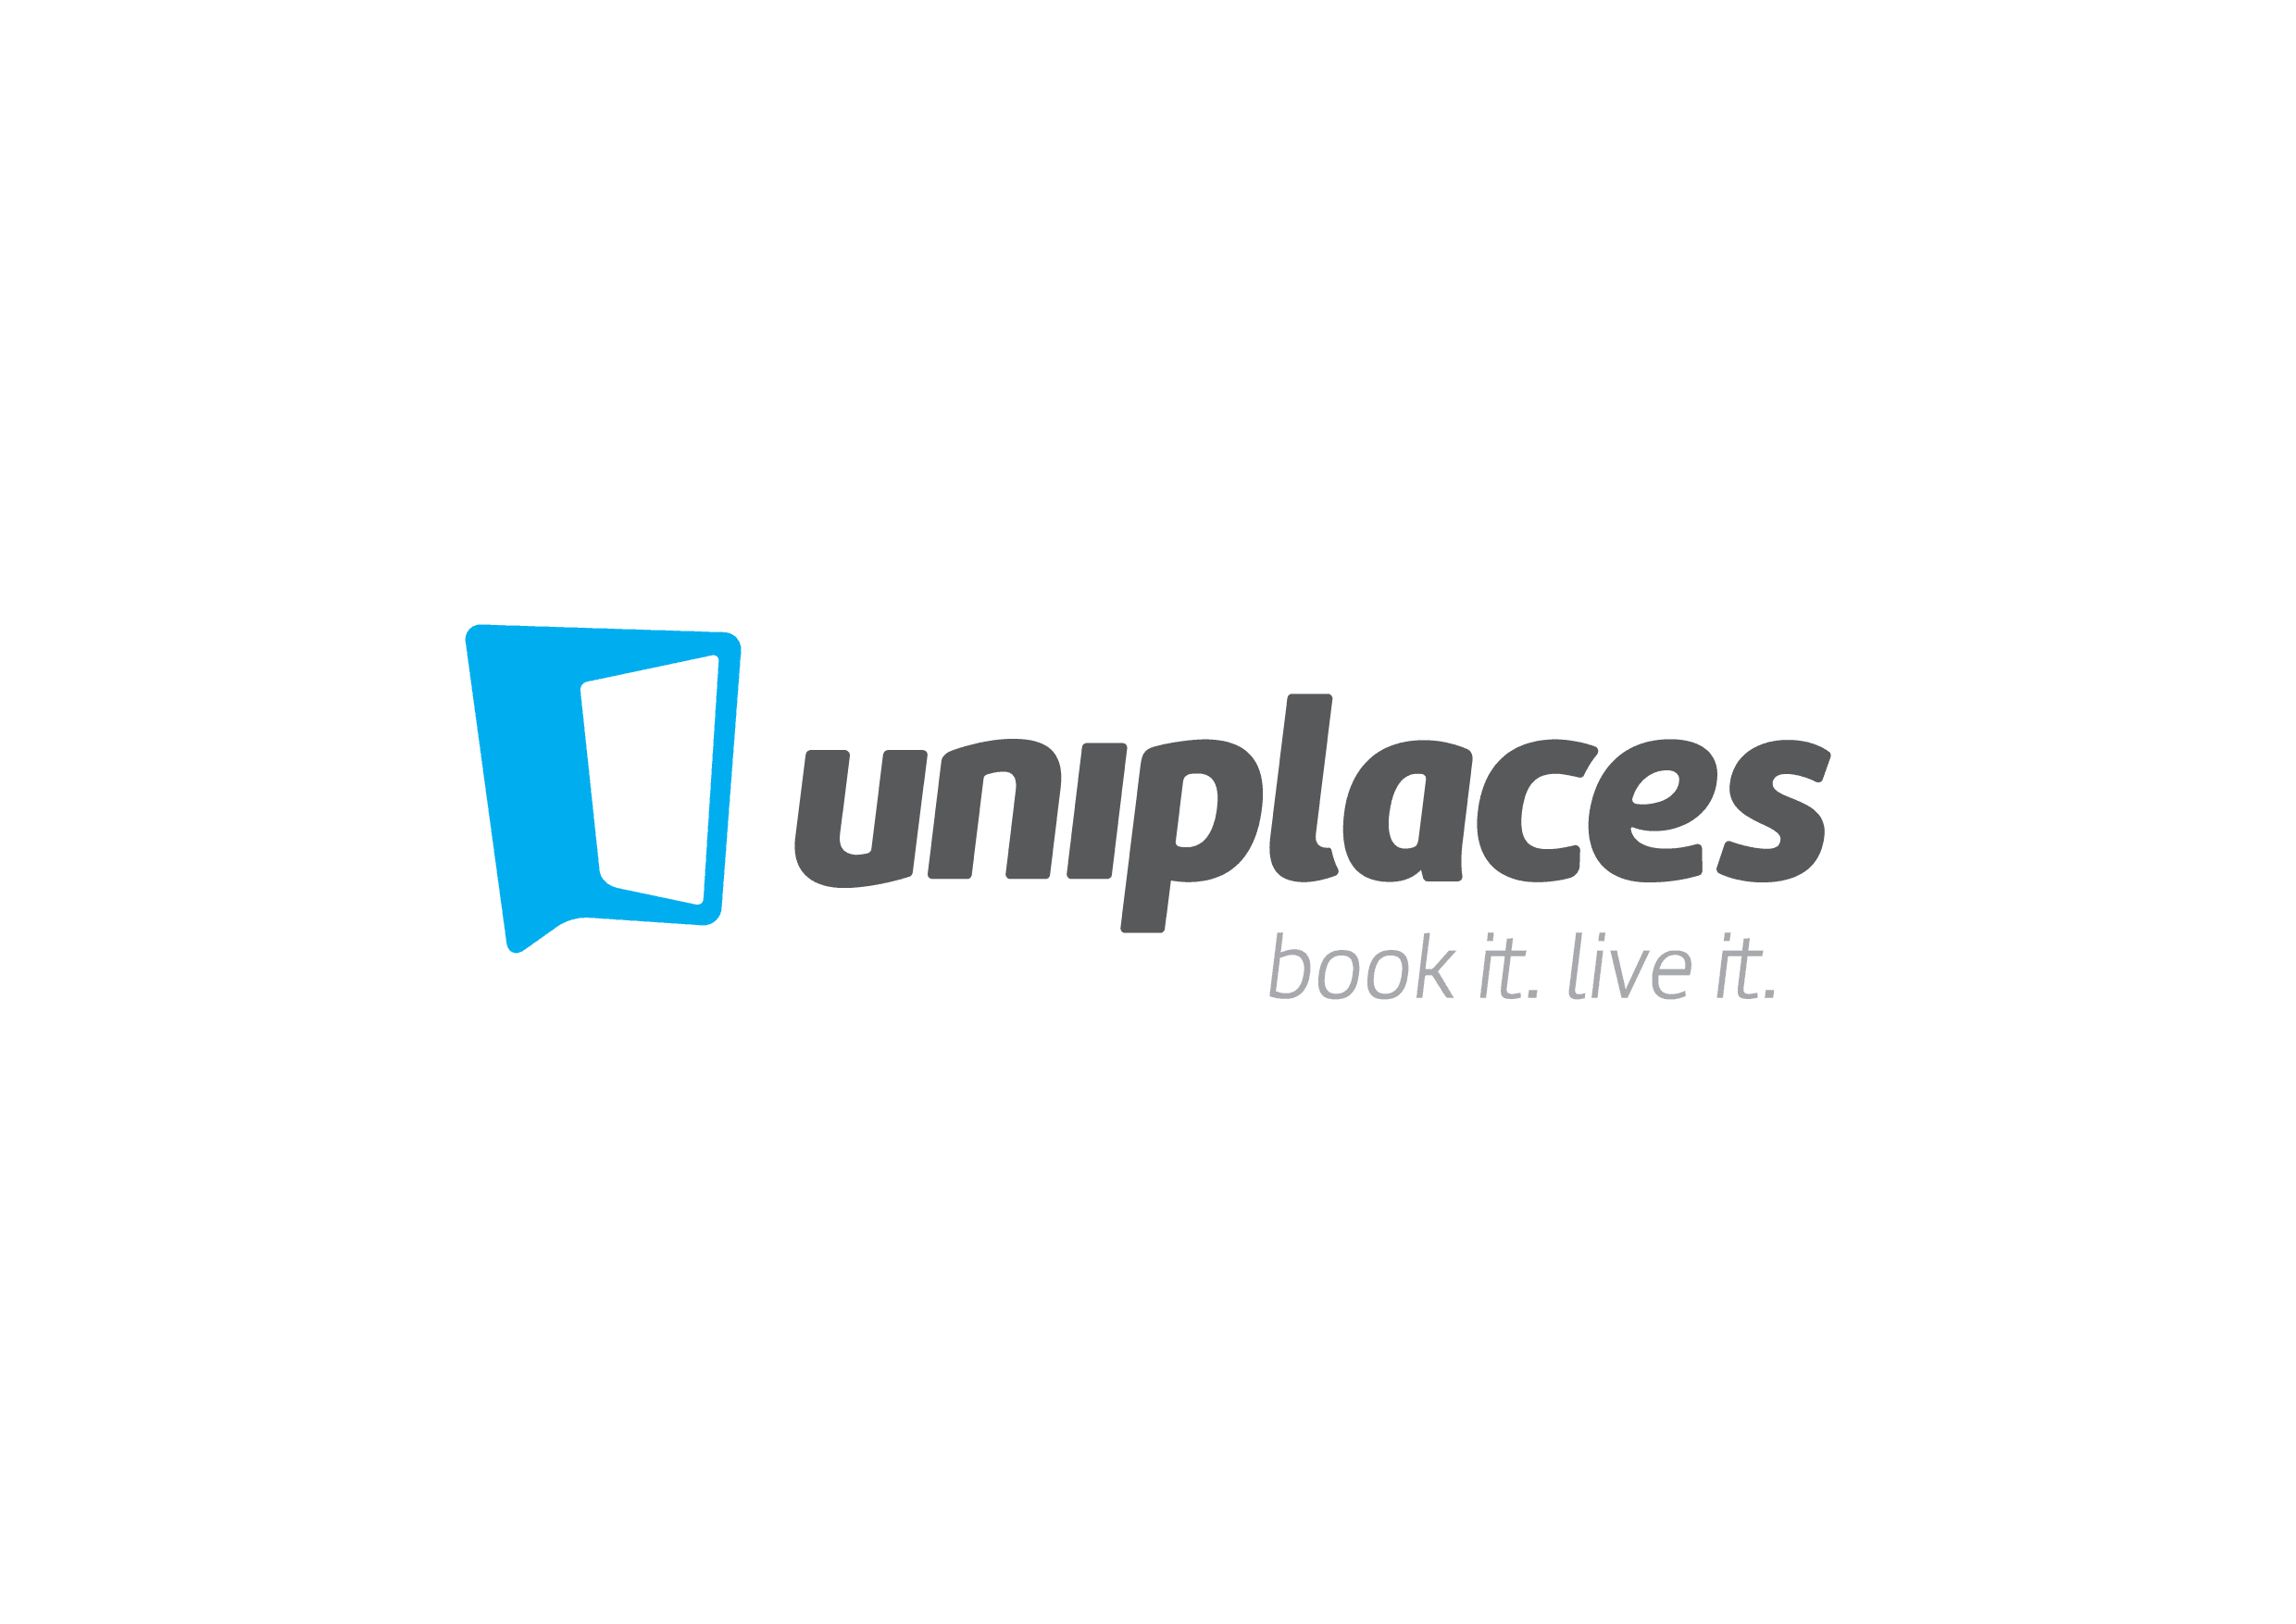 Uniplaces